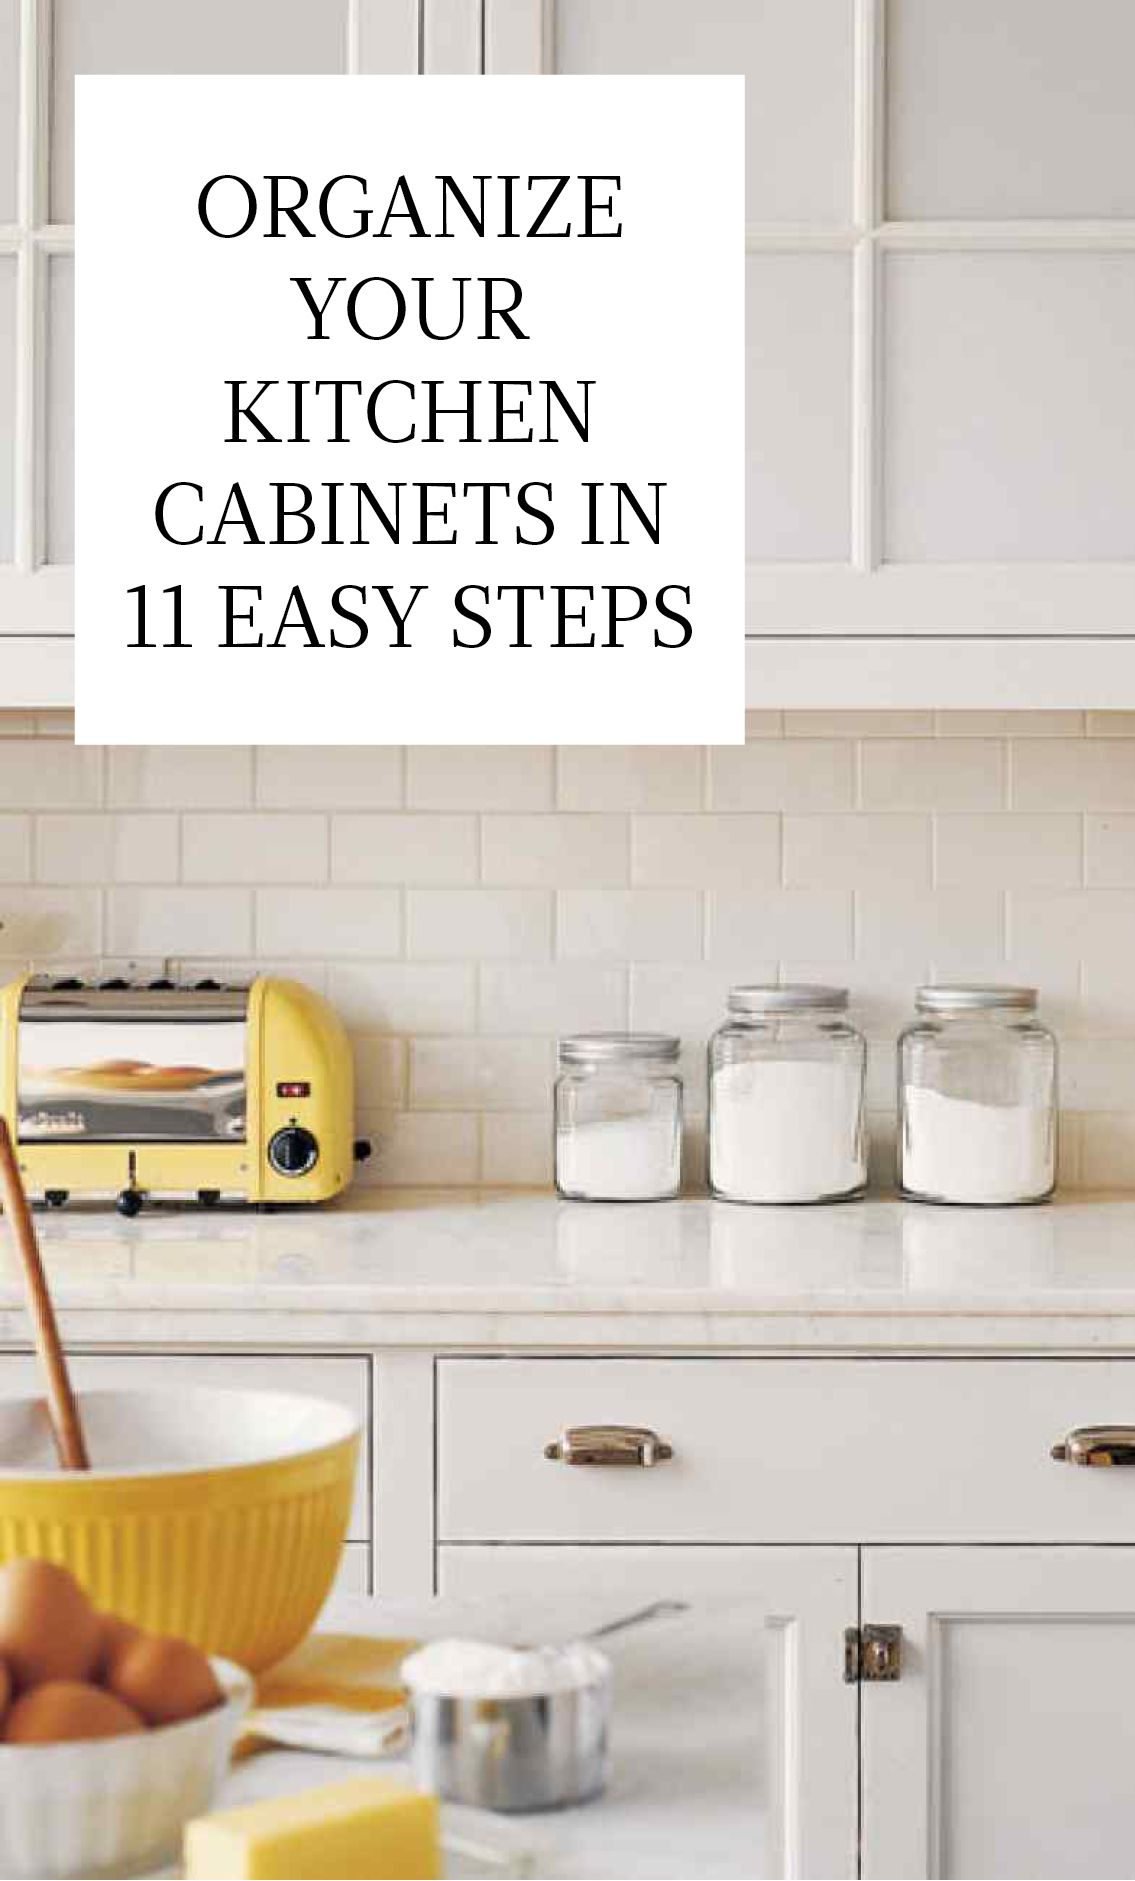 Organize Your Kitchen Cabinets in 11 Easy Steps | Homekeeping ...